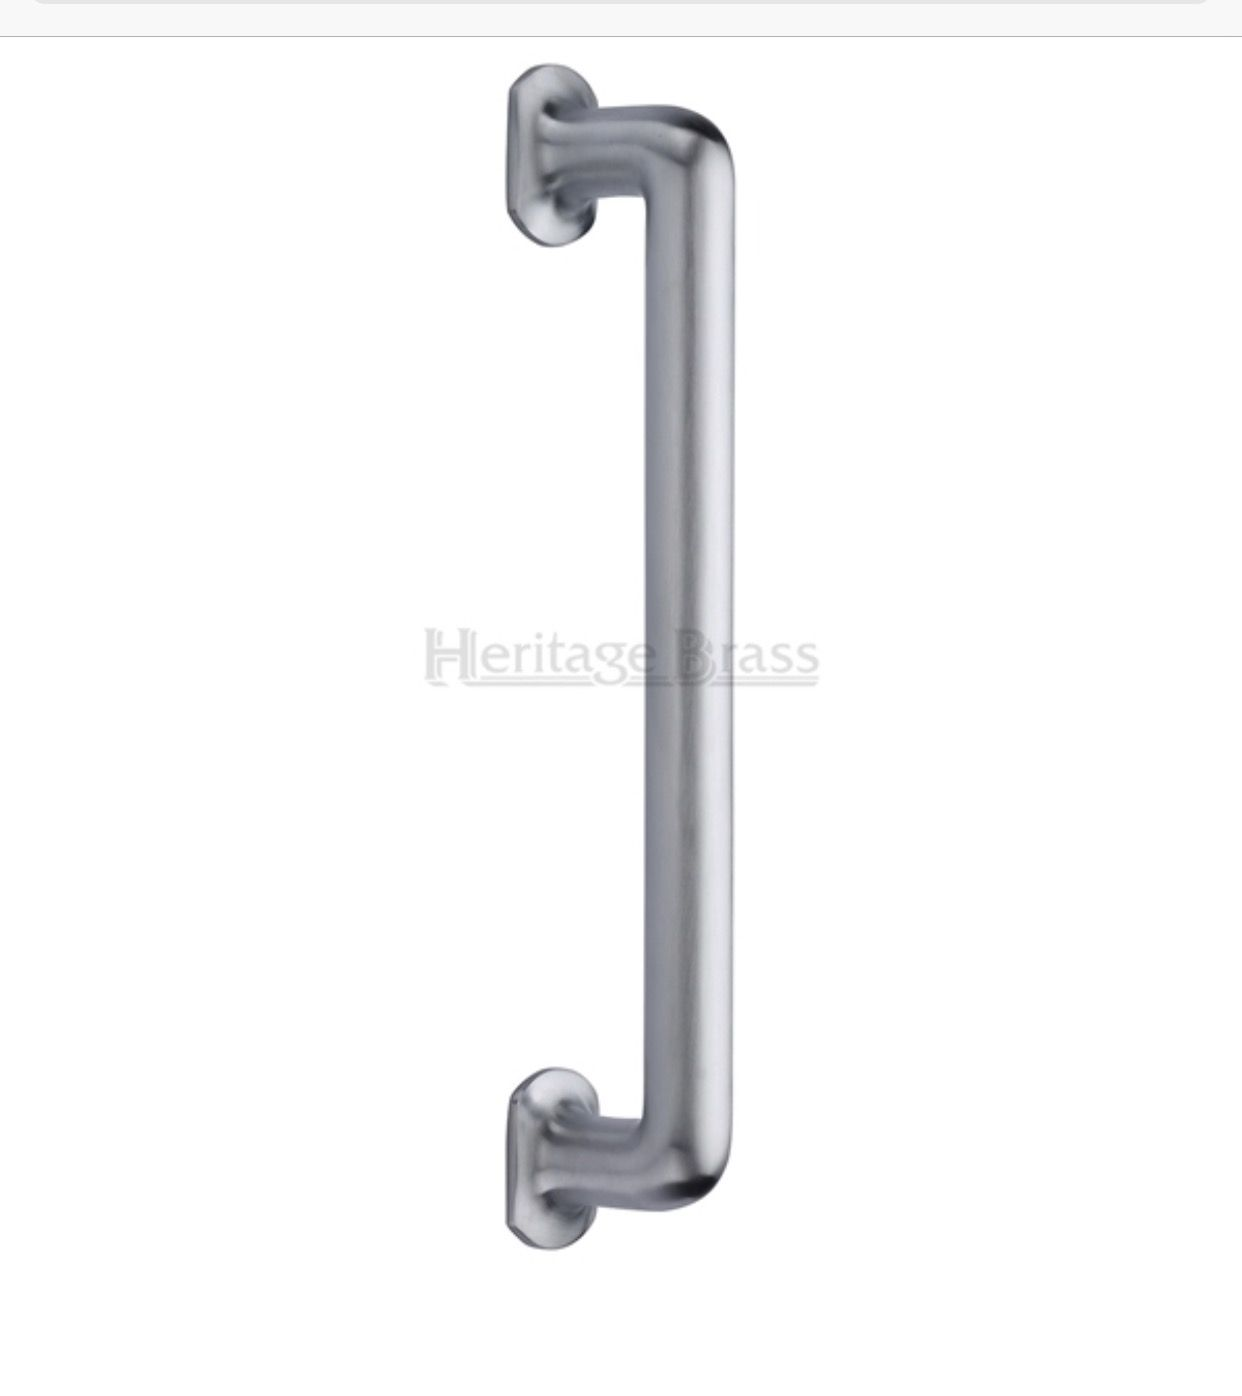 Traditional Pull Door Handle Dimensions Two Sizes Available